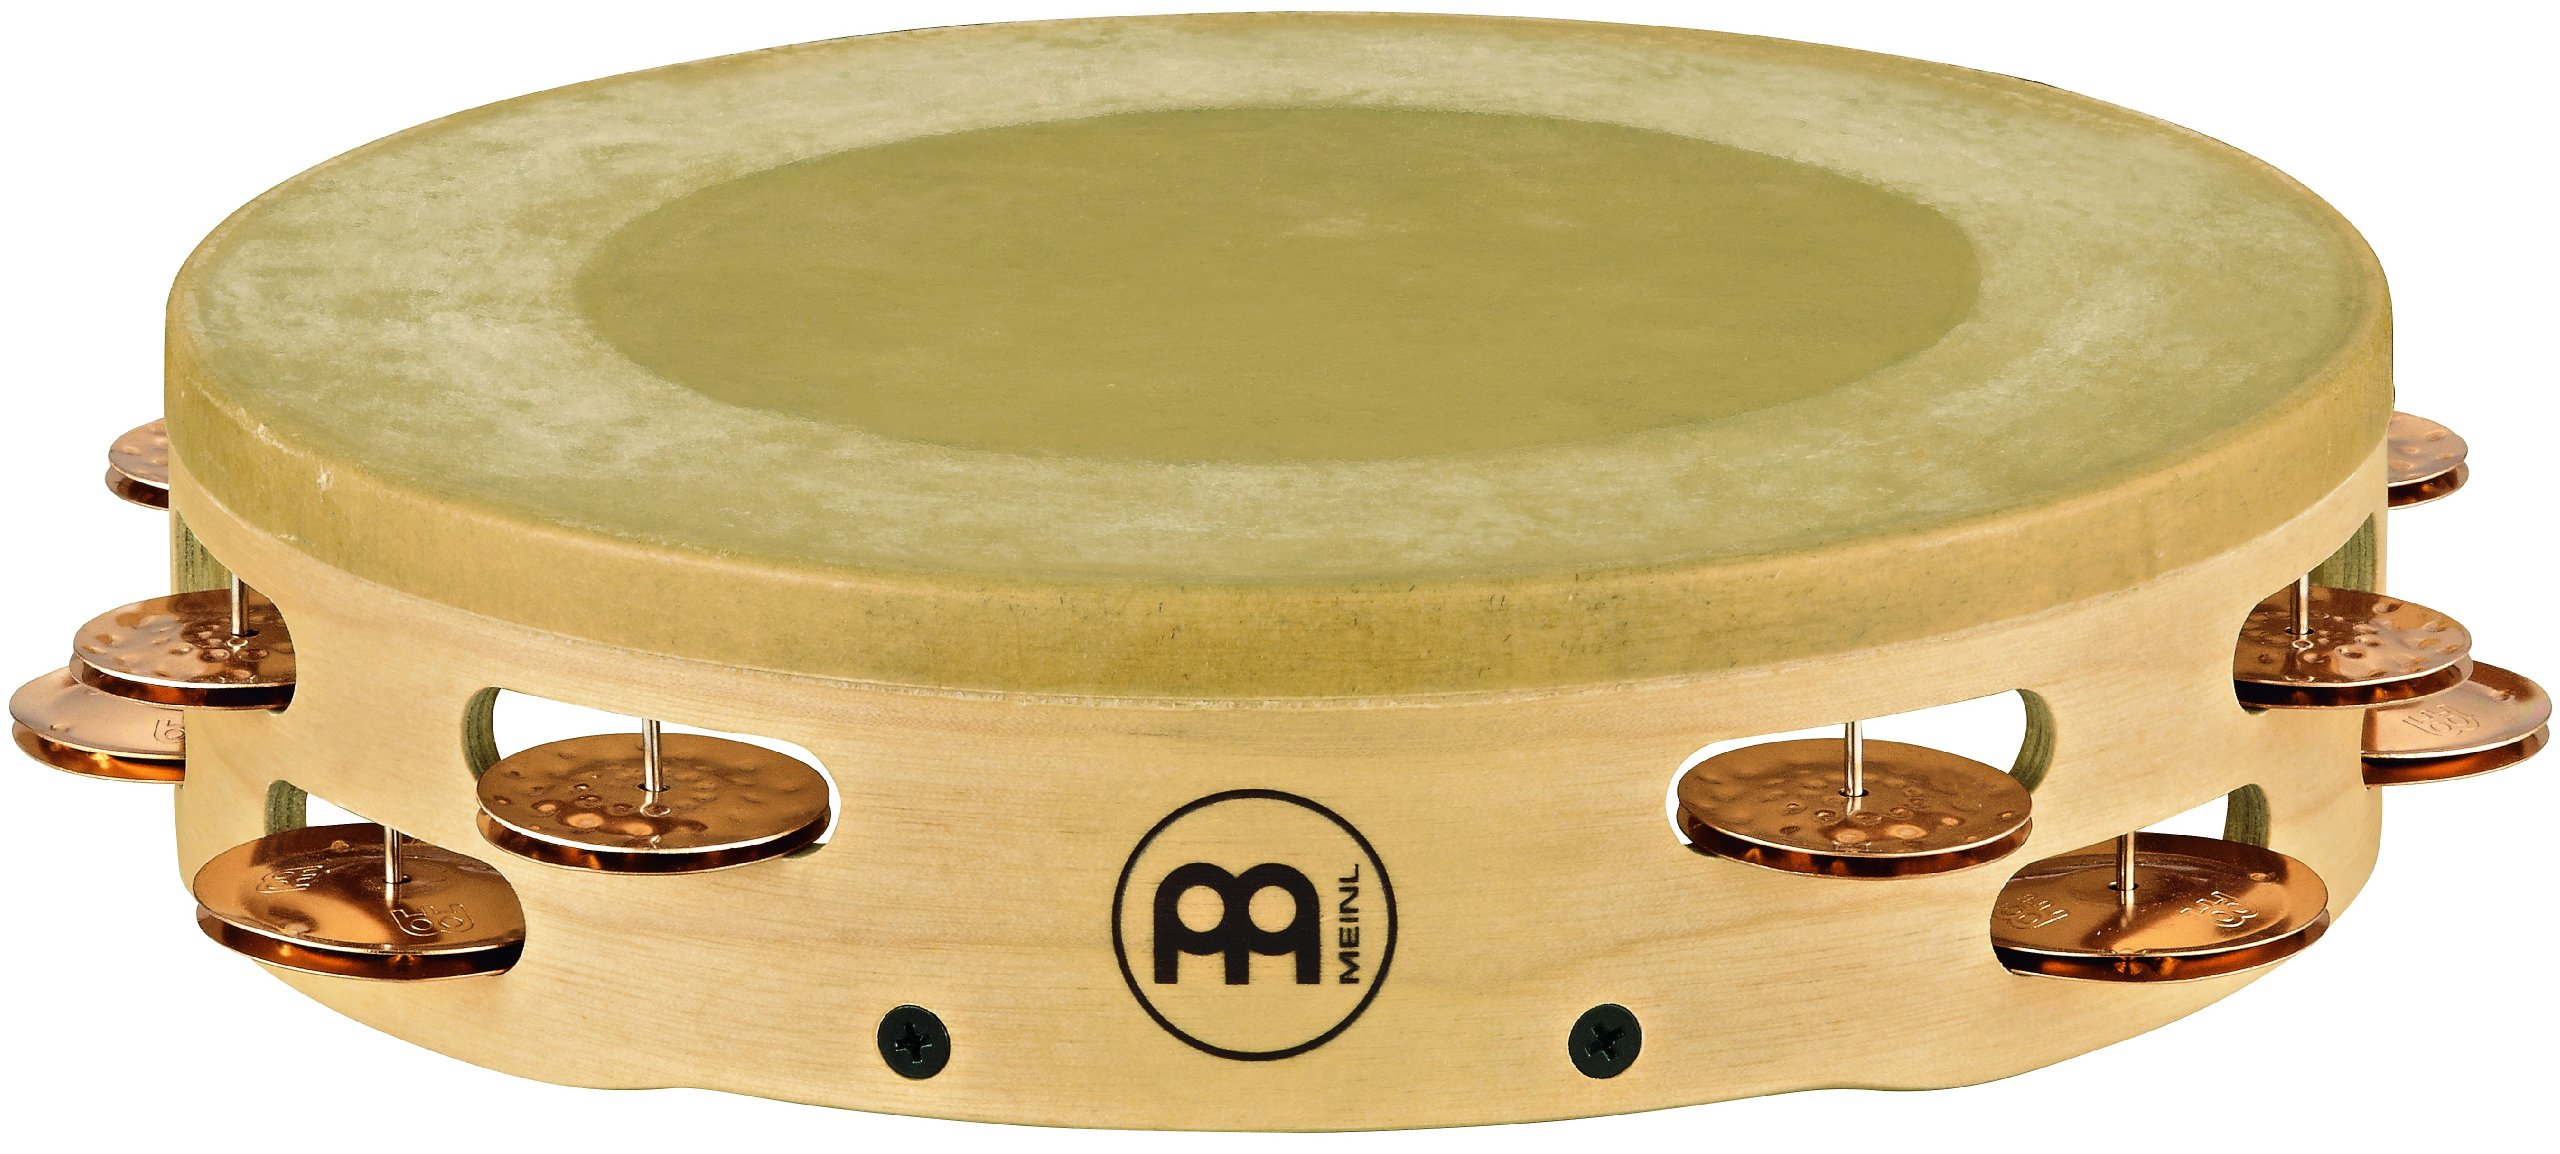 Meinl Percussion AE-MTAH2BO Artisan Edition Maple Tambourine with Calf Skin Head and Bronze Jingles, 2 Rows